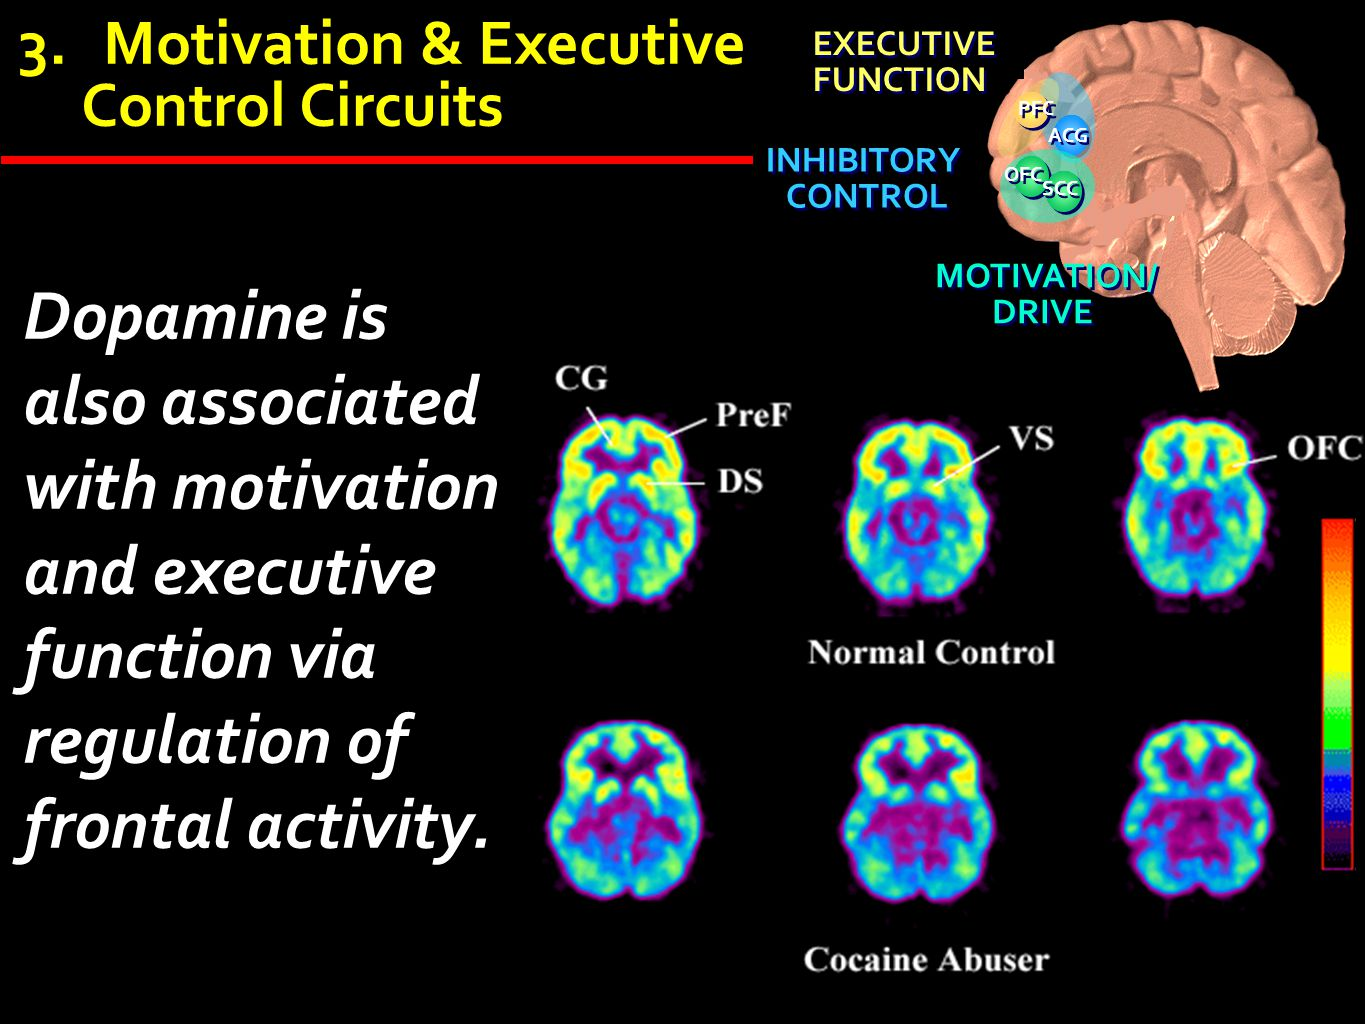 ACG OFC. SCC. INHIBITORY. CONTROL. EXECUTIVE. FUNCTION. PFC. MOTIVATION/ DRIVE. Motivation & Executive.